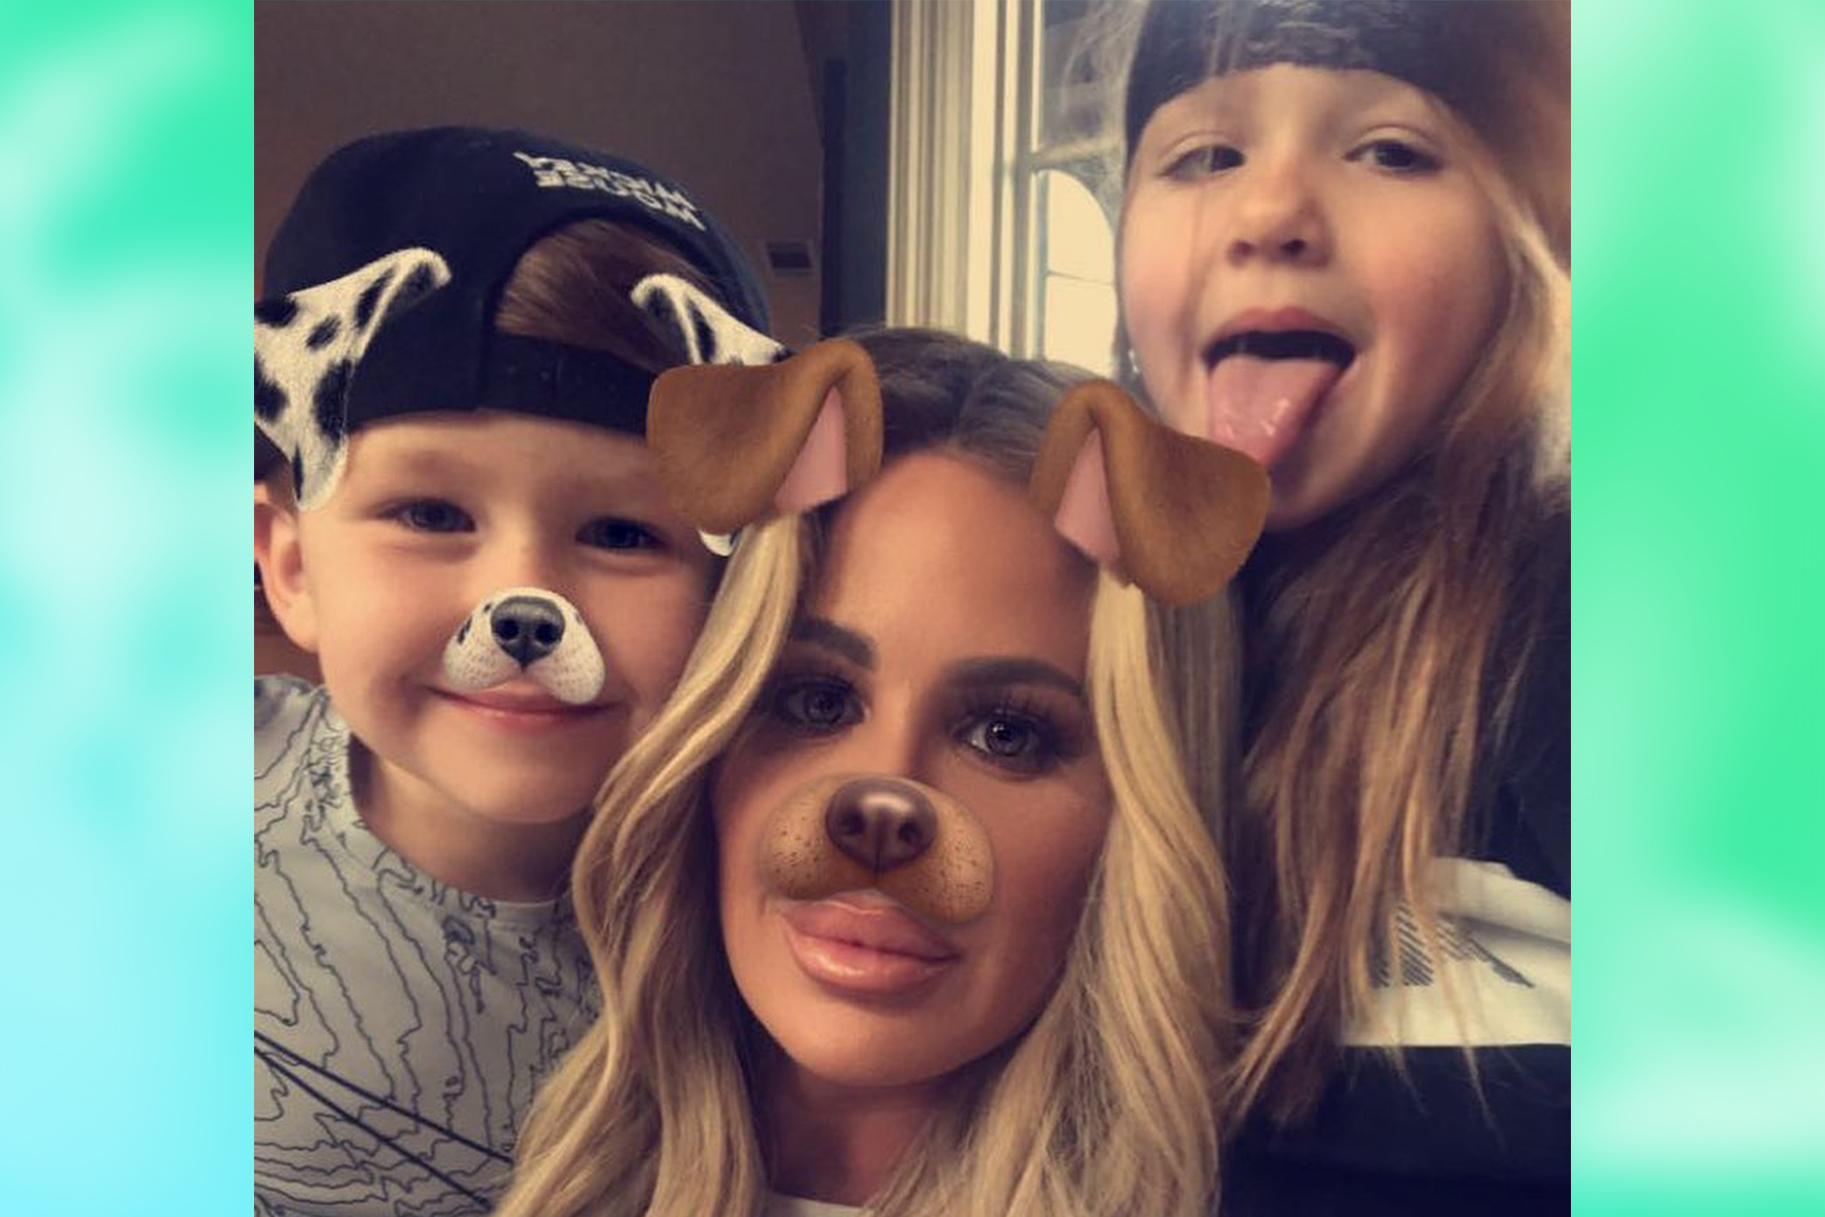 Kim Zolciak Biermann Kids Gucci